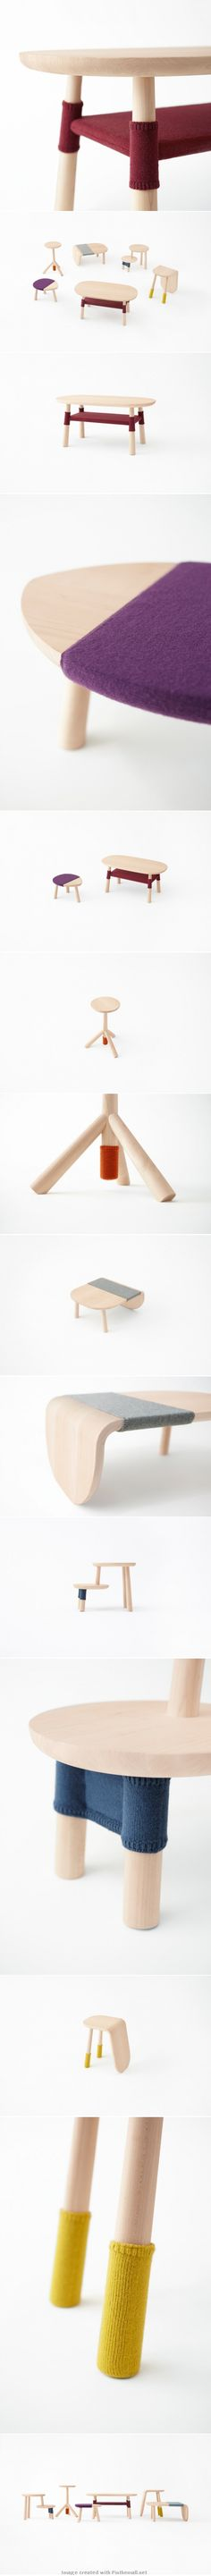 Pooh Table de Nendo for Walt Disney Japan